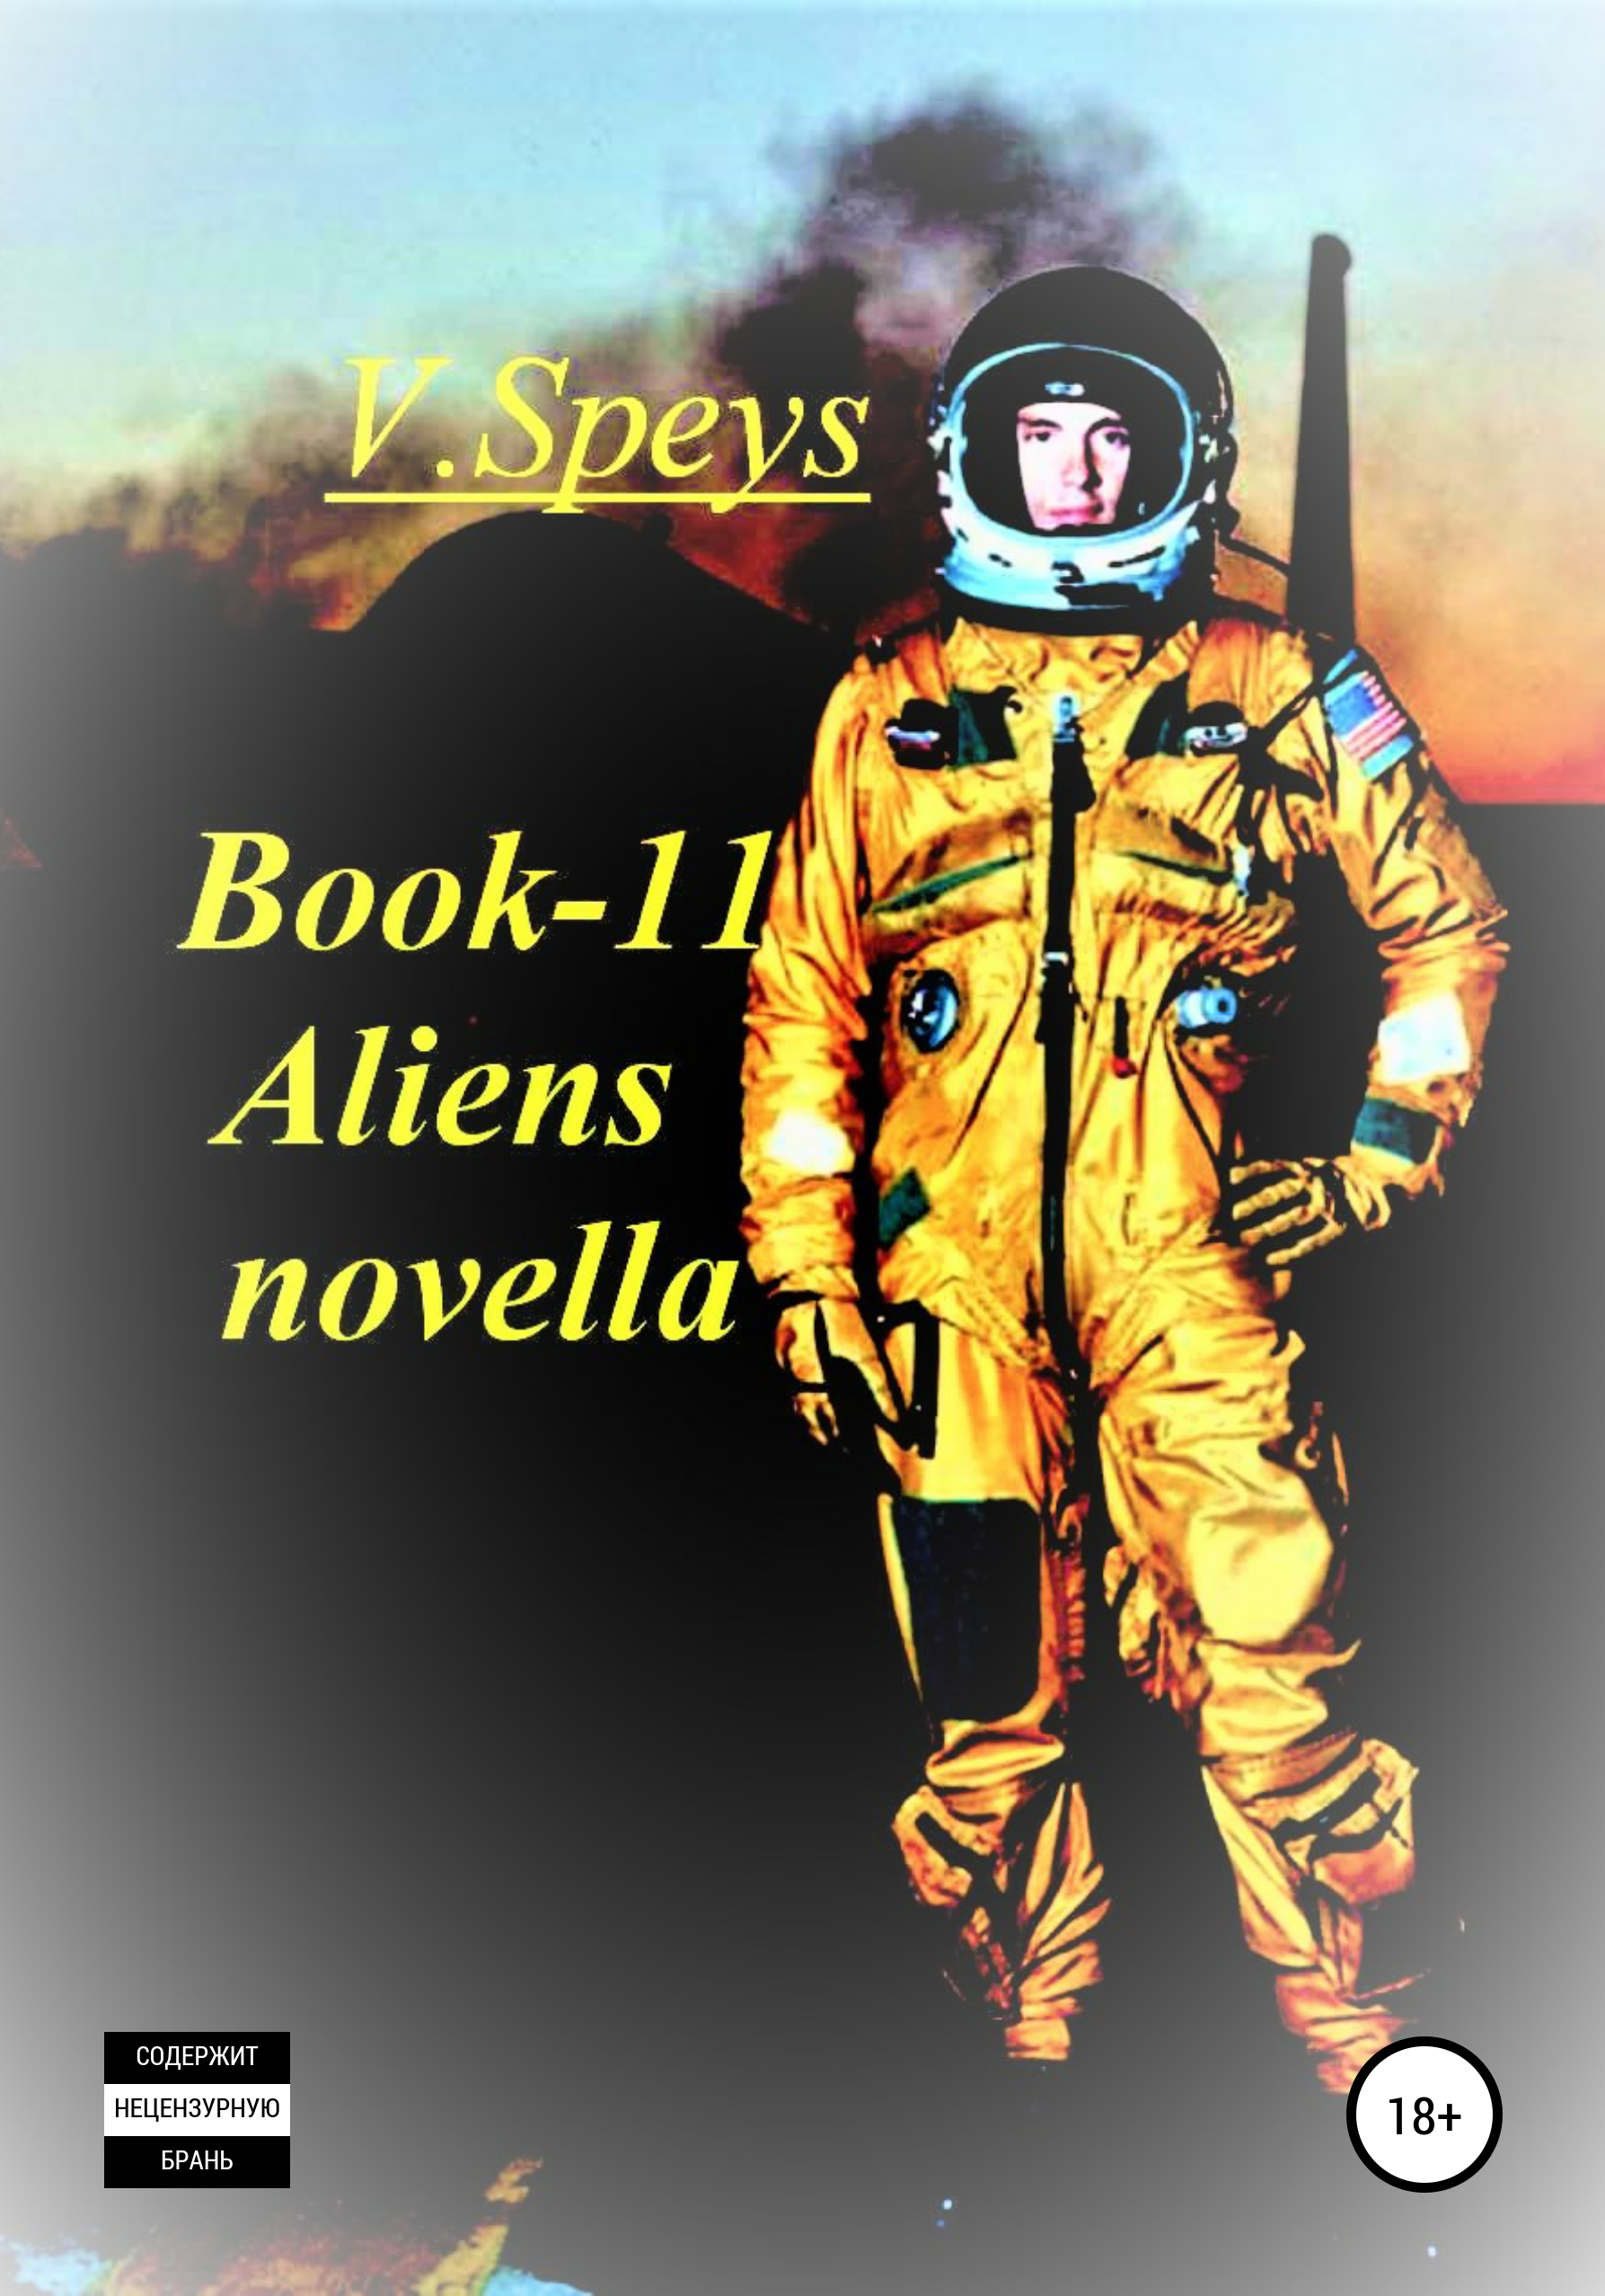 Book -11 Aliens novella